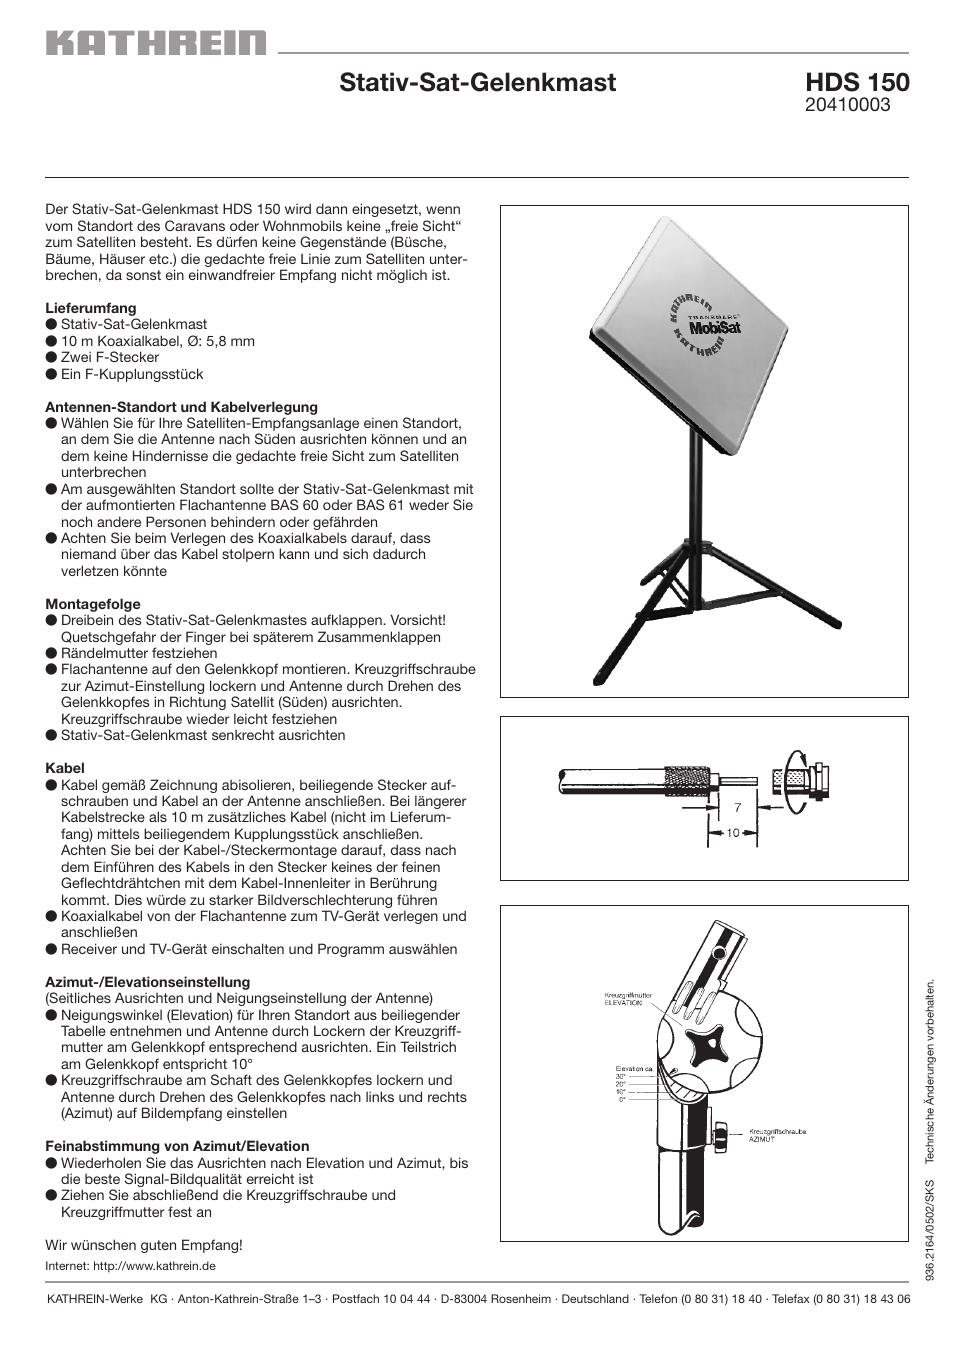 Kathrein Hds 150 User Manual 3 Pages